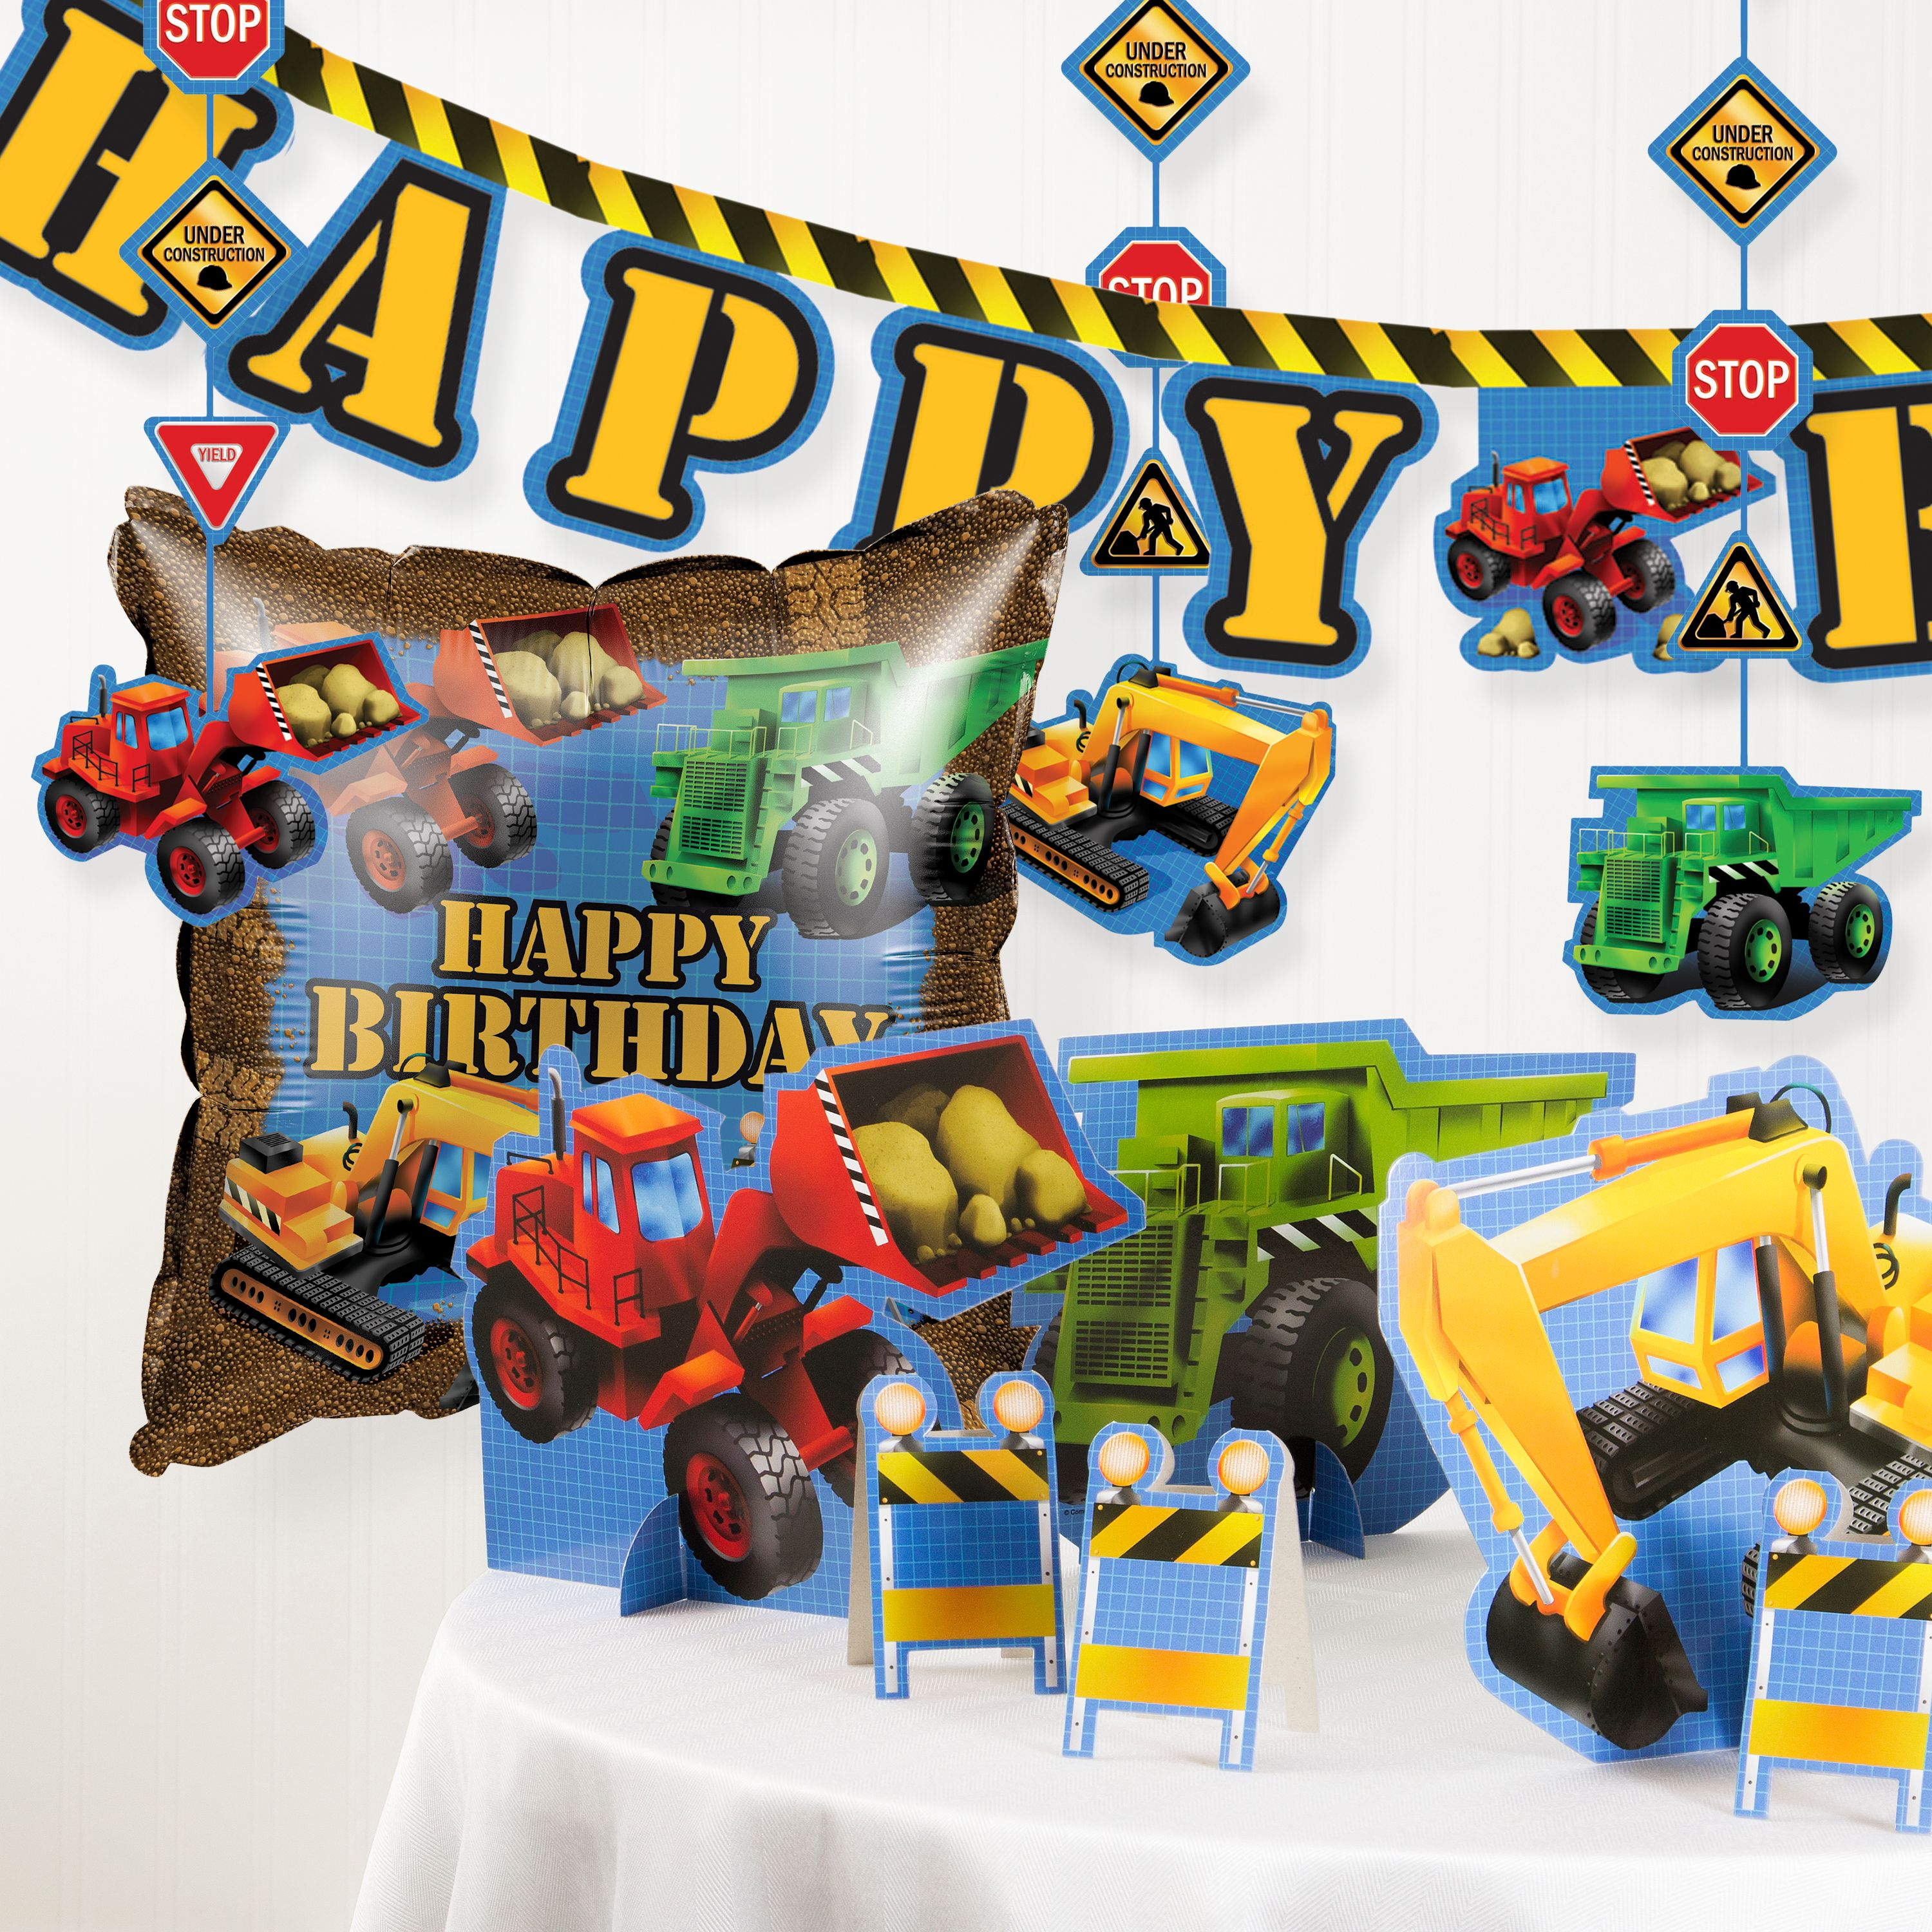 Under Construction Birthday Party Decorations Kit